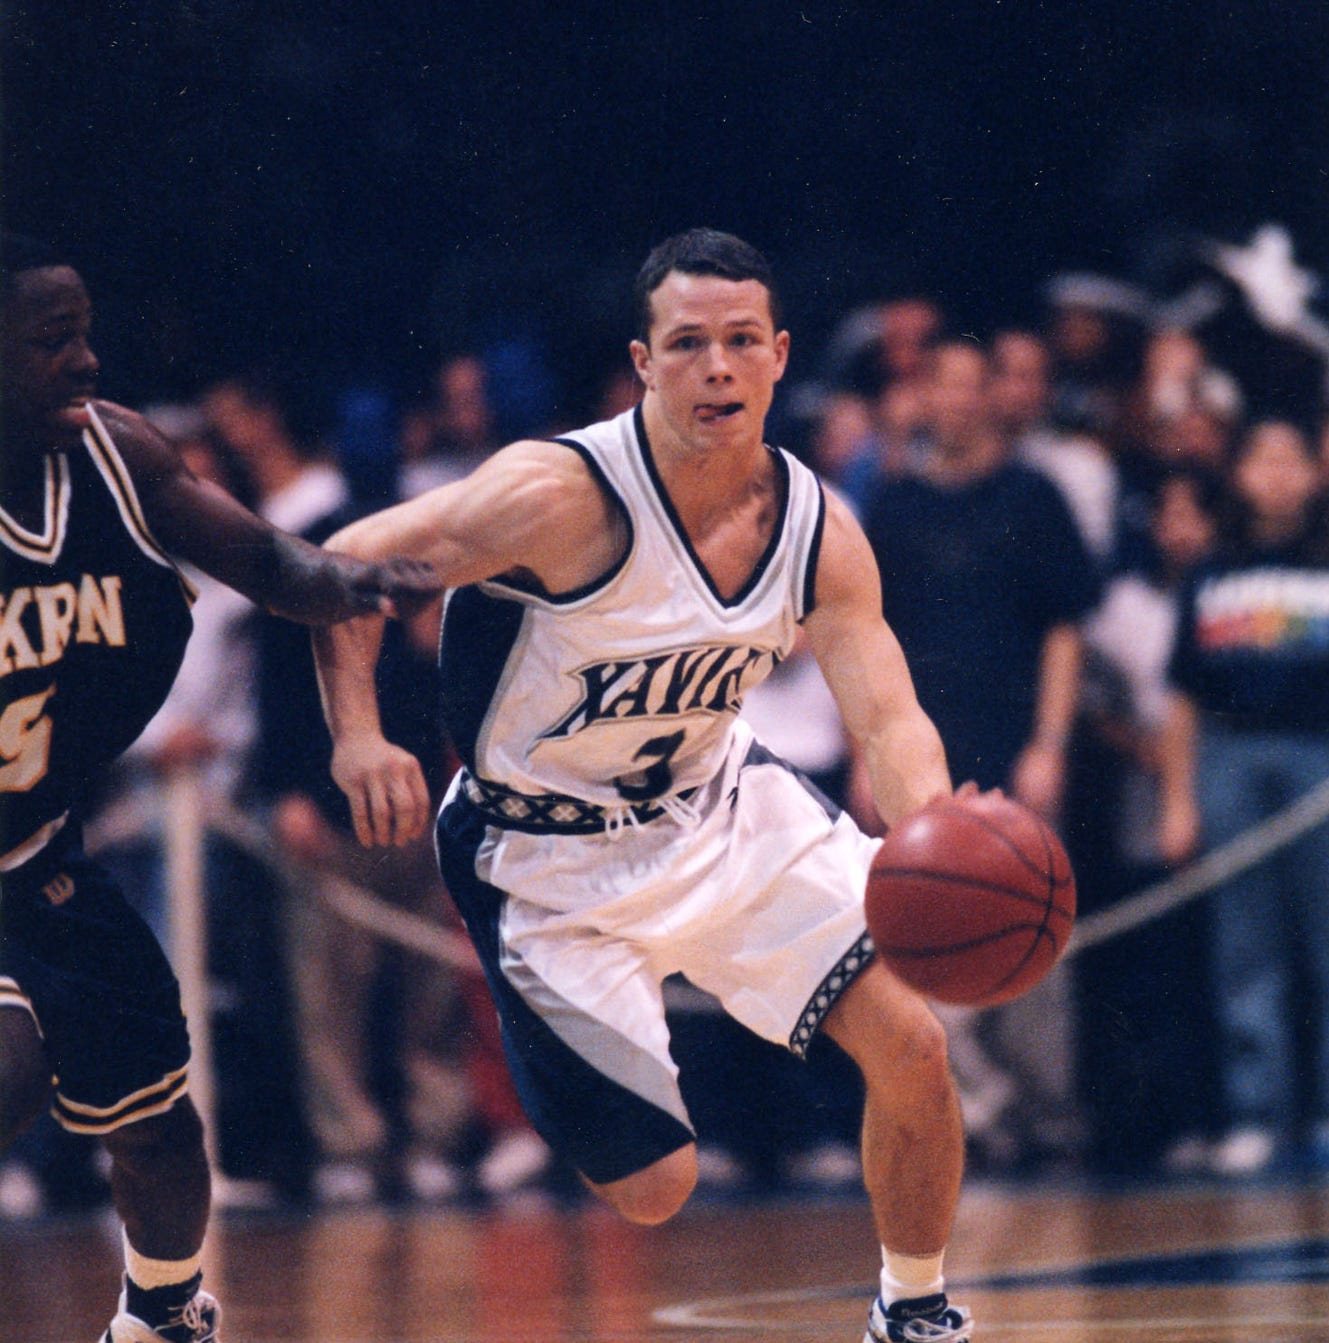 Sources: Former Xavier guard Pat Kelsey on list of candidates for Northern Kentucky University coaching job